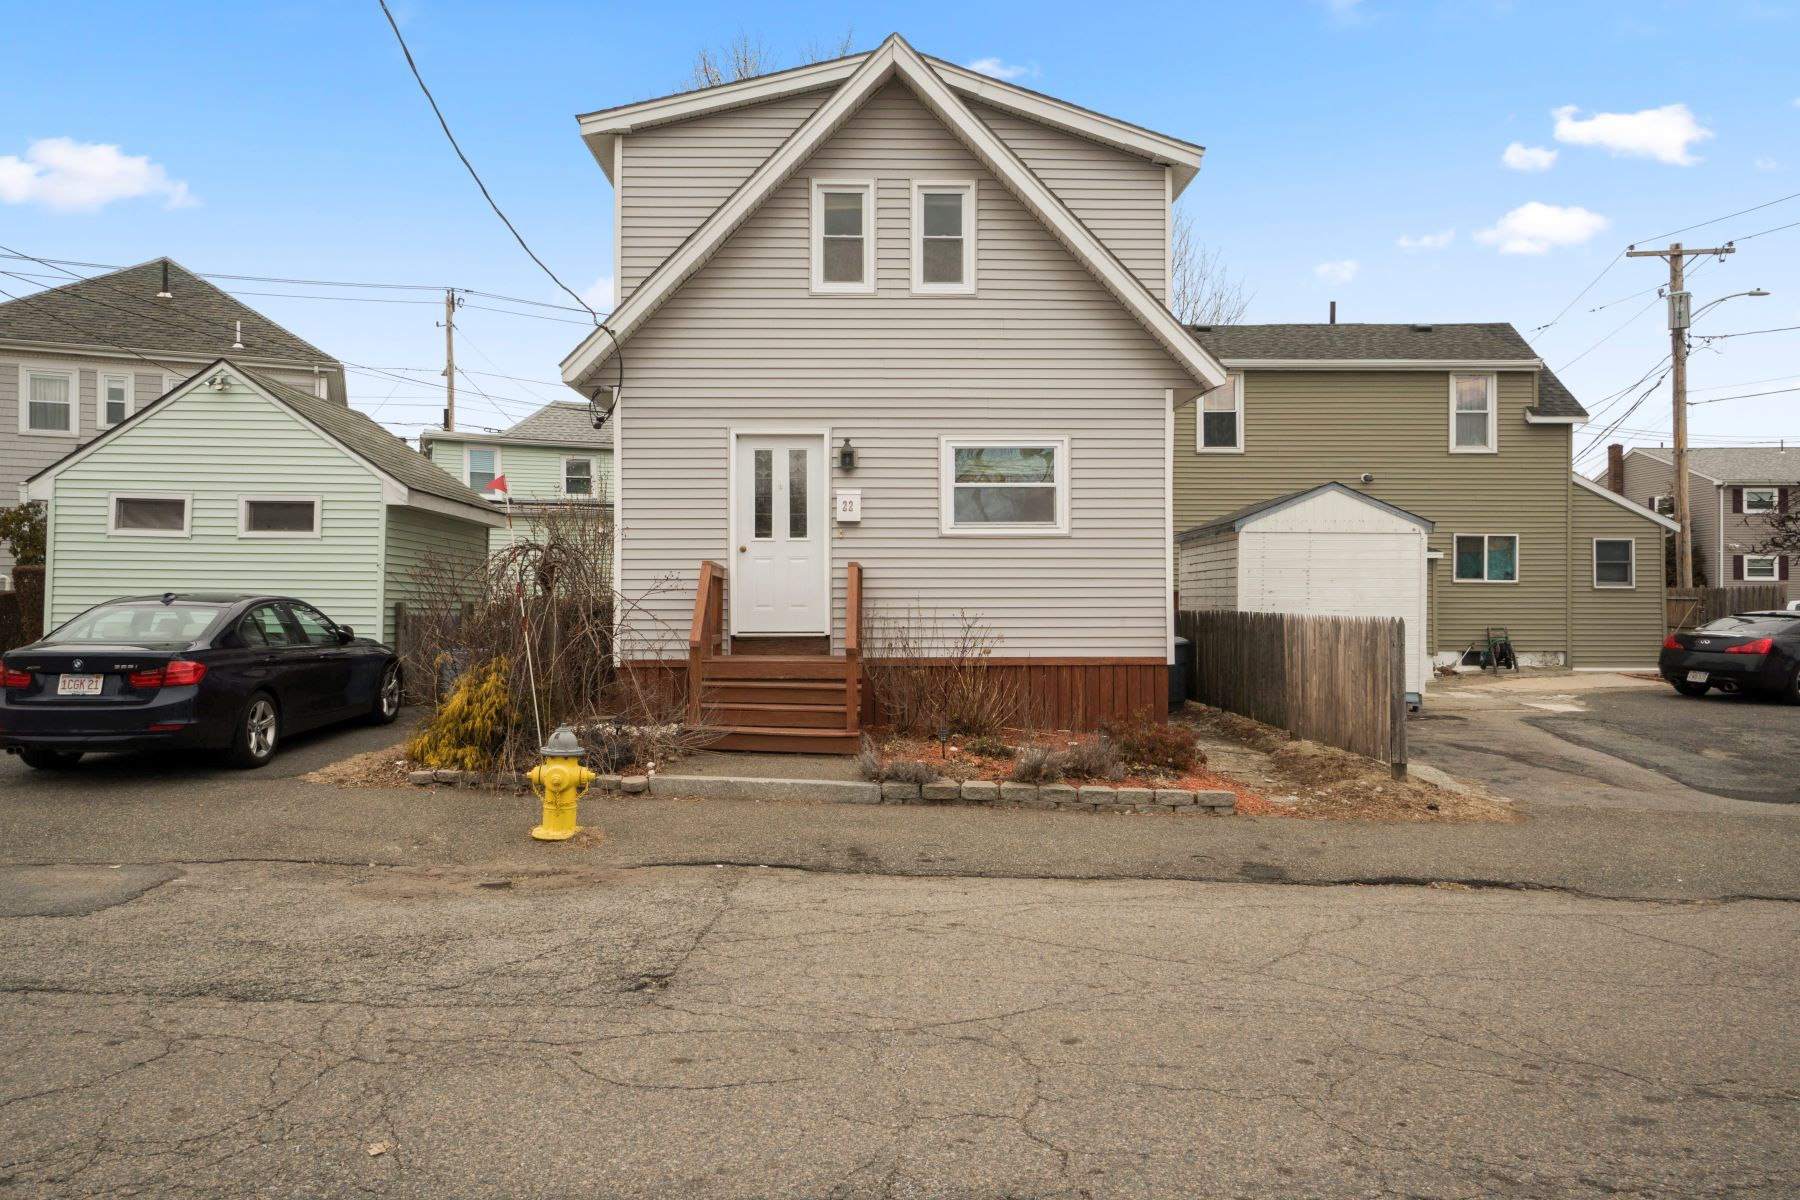 Single Family Home for Active at 22 Bird Street 22 Bird St Quincy, Massachusetts 02169 United States